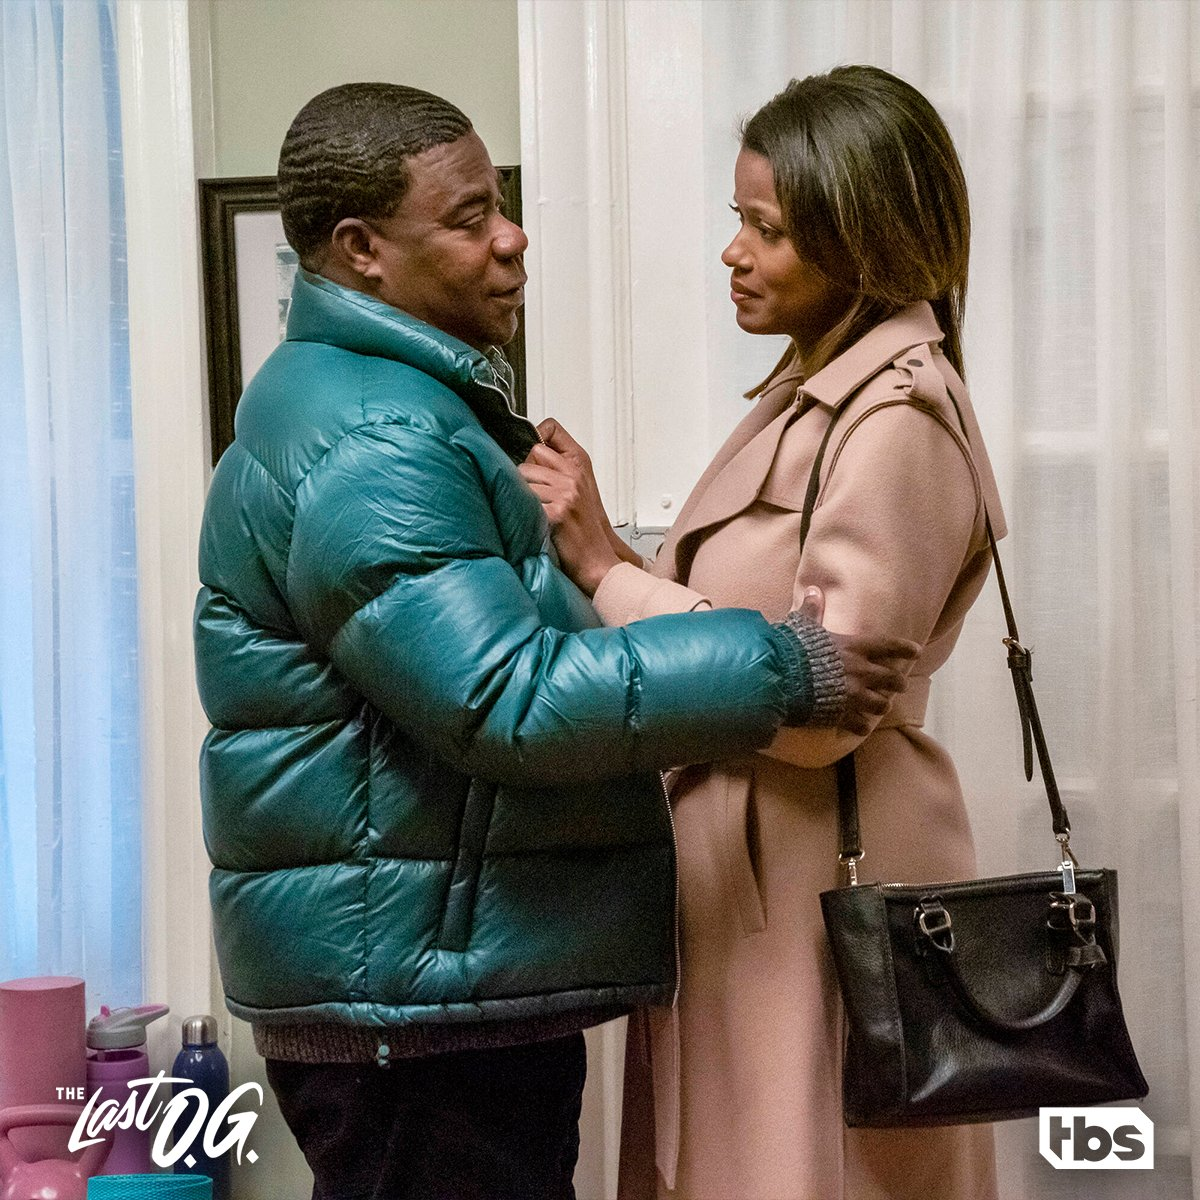 Could this be a new lady in Tray's life? Find out tomorrow on an all-new episode of #TheLastOG!